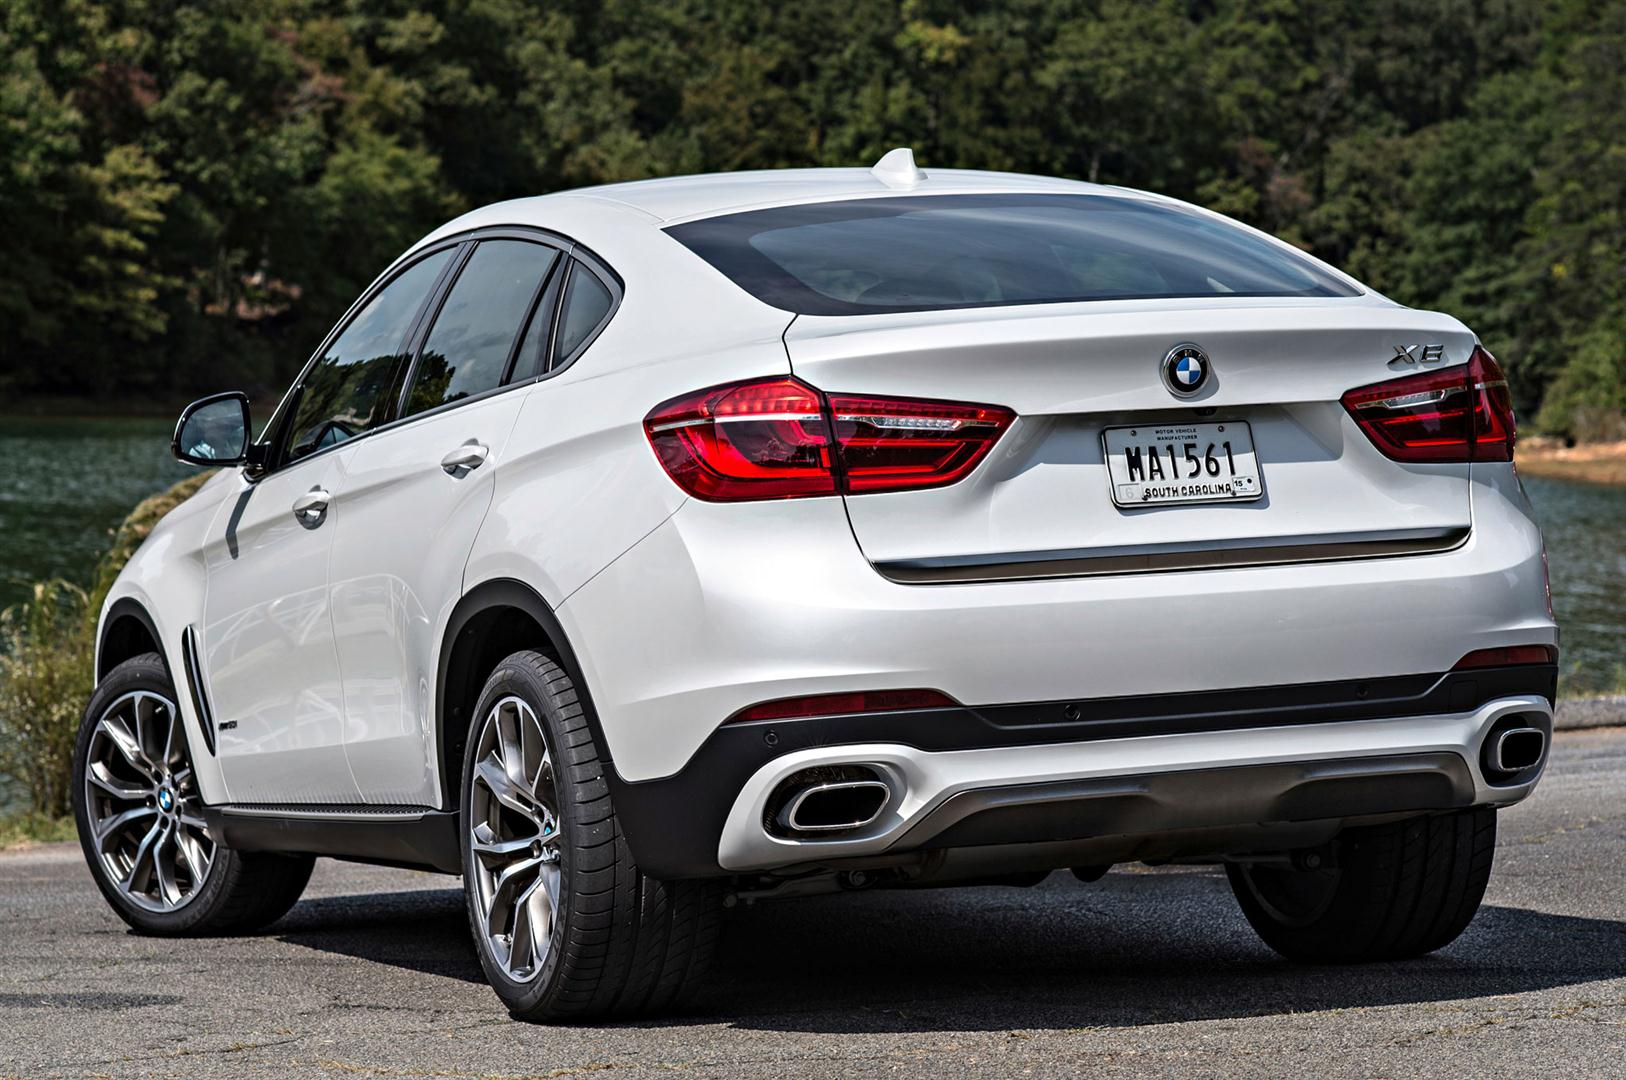 2018 bmw x6m xdrive50i rear angle 20182019 best suv Powertrain